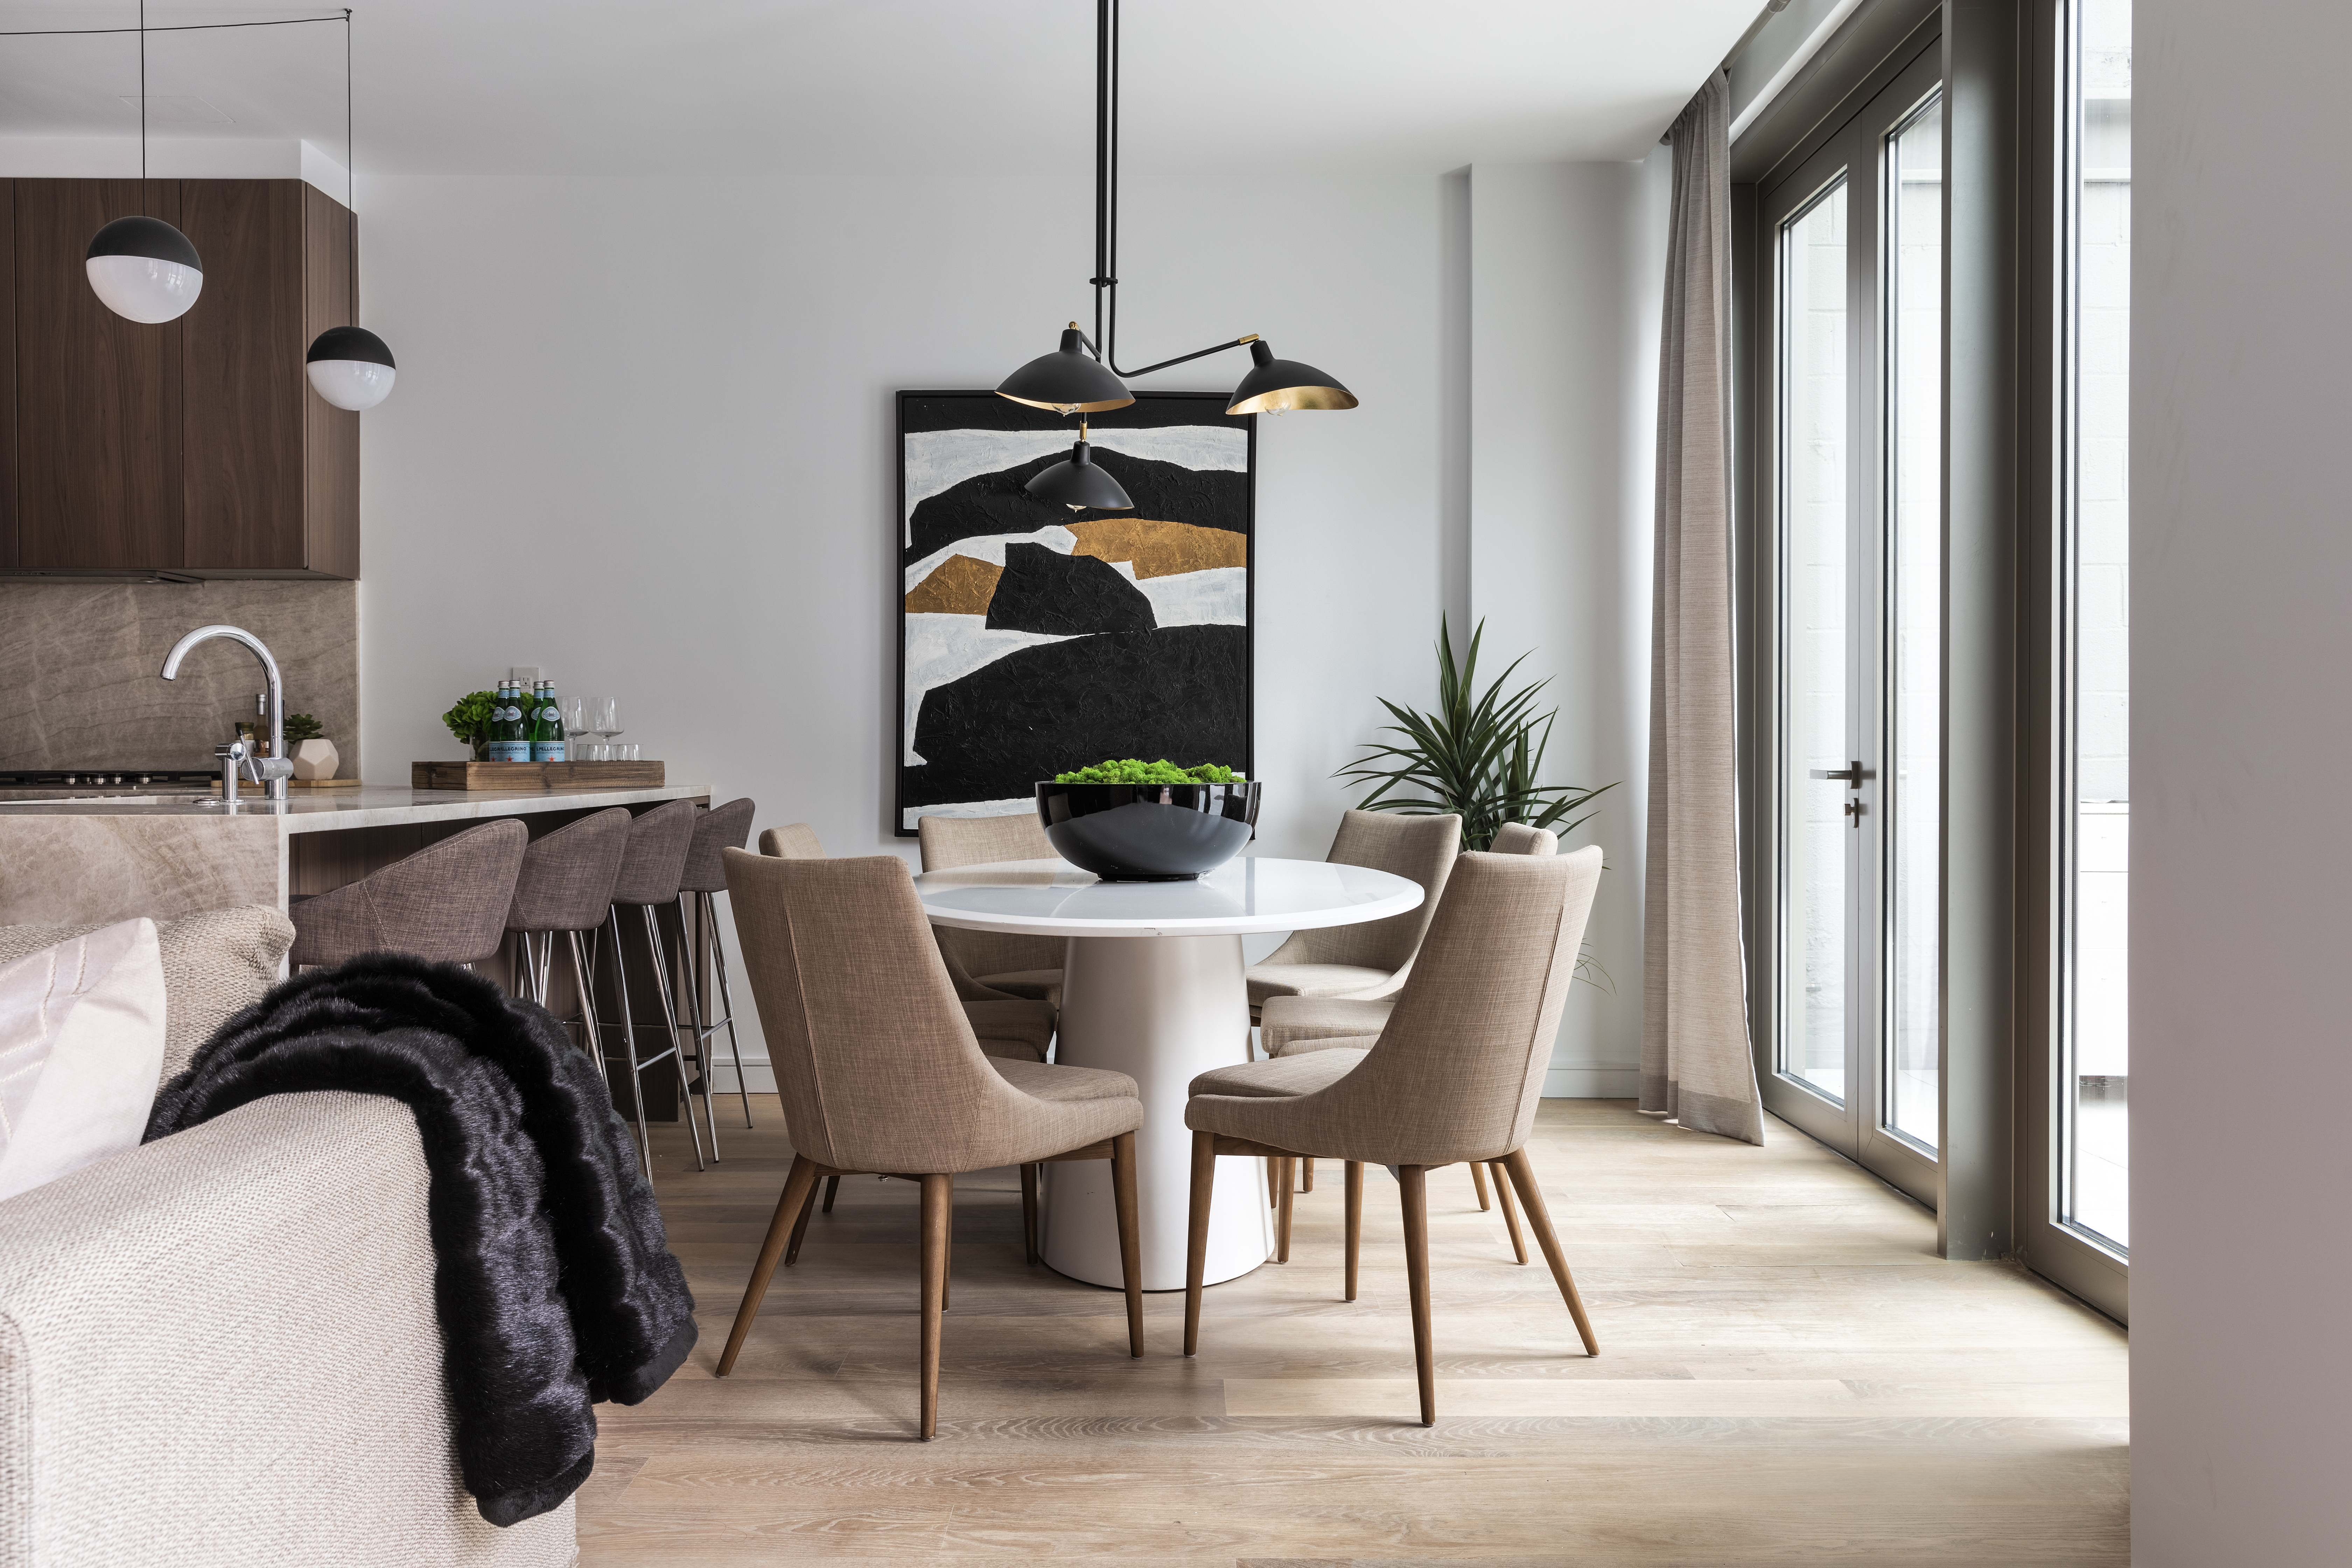 A new ceiling pendant adds a dramatic focal point to this dining space.